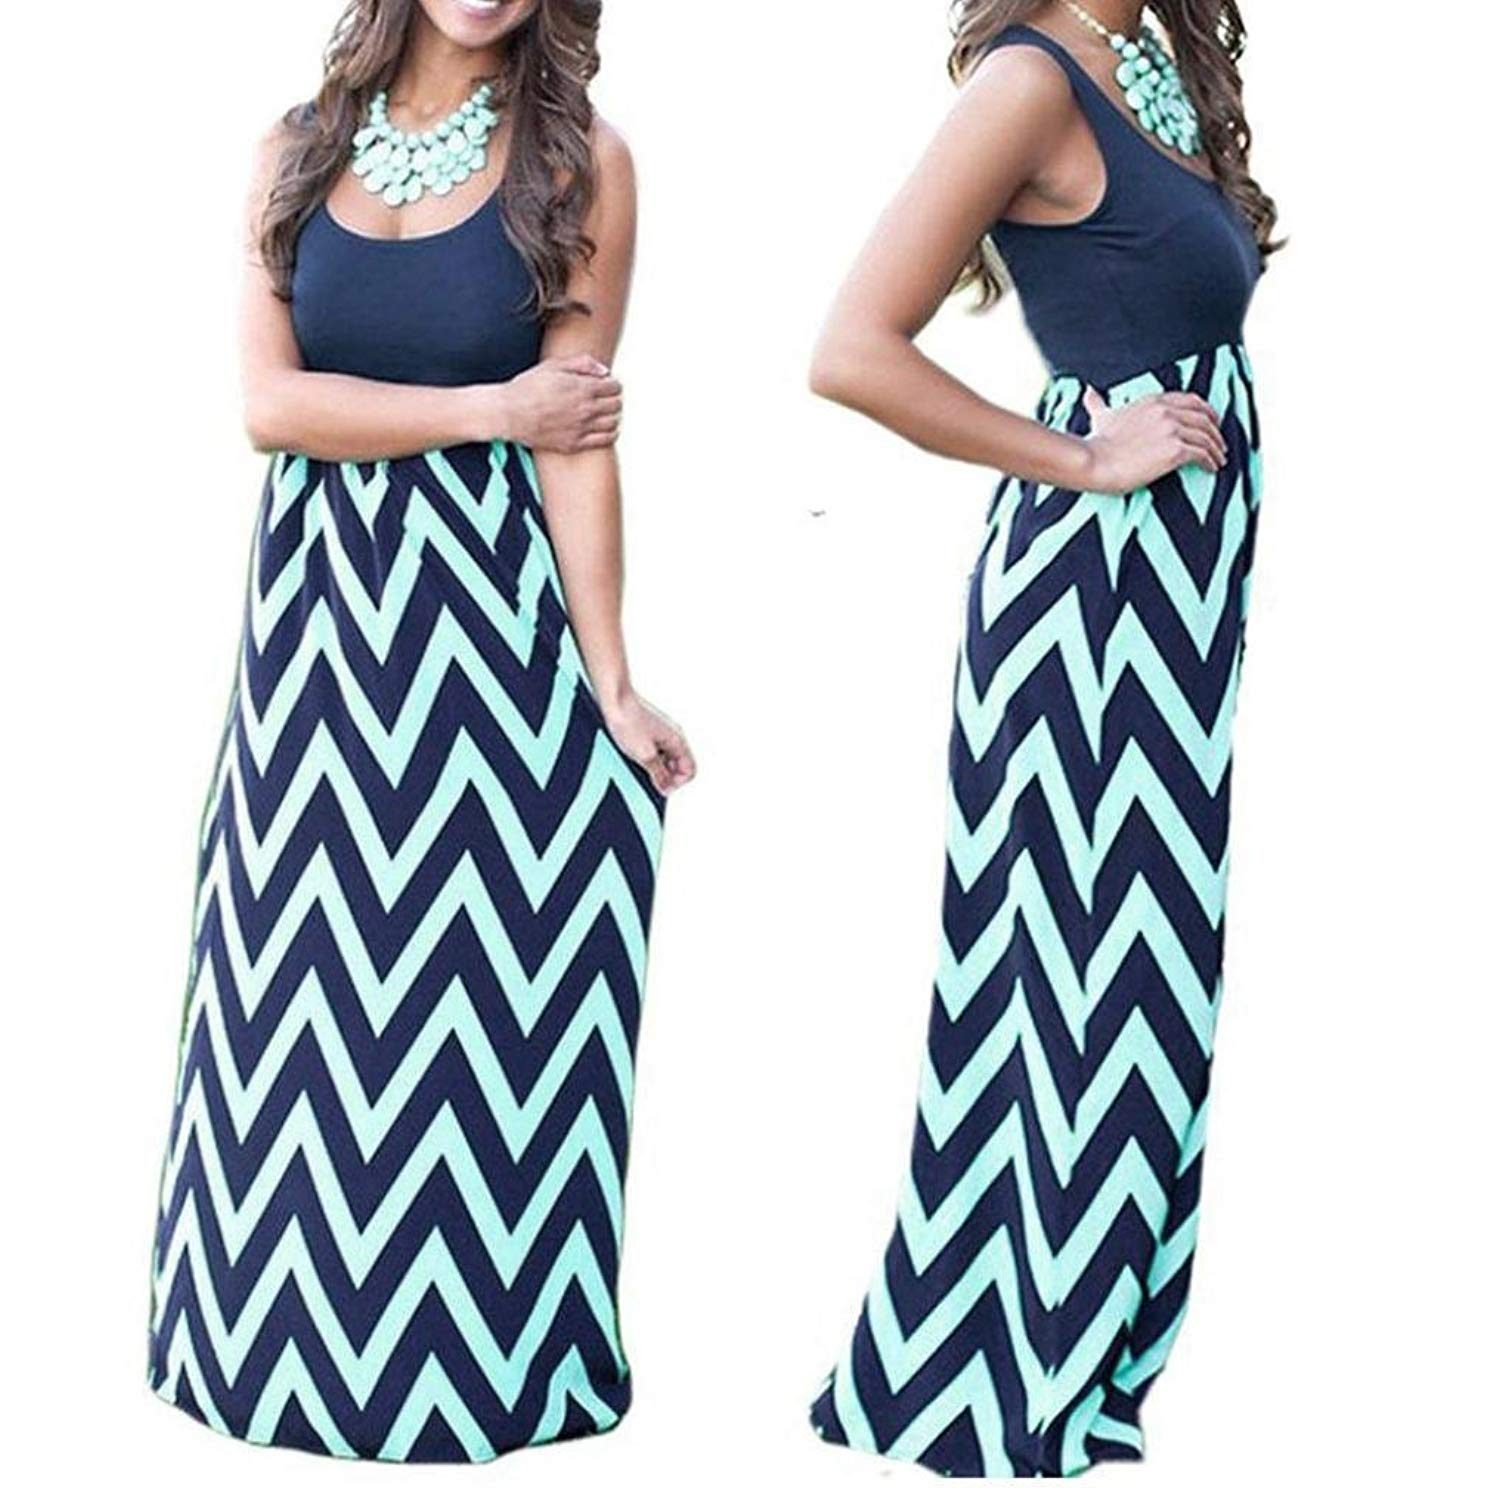 ab06b4144ae Get Quotations · Womens Wave Striped Summer Beach Dress Party Long Maxi  Dresses